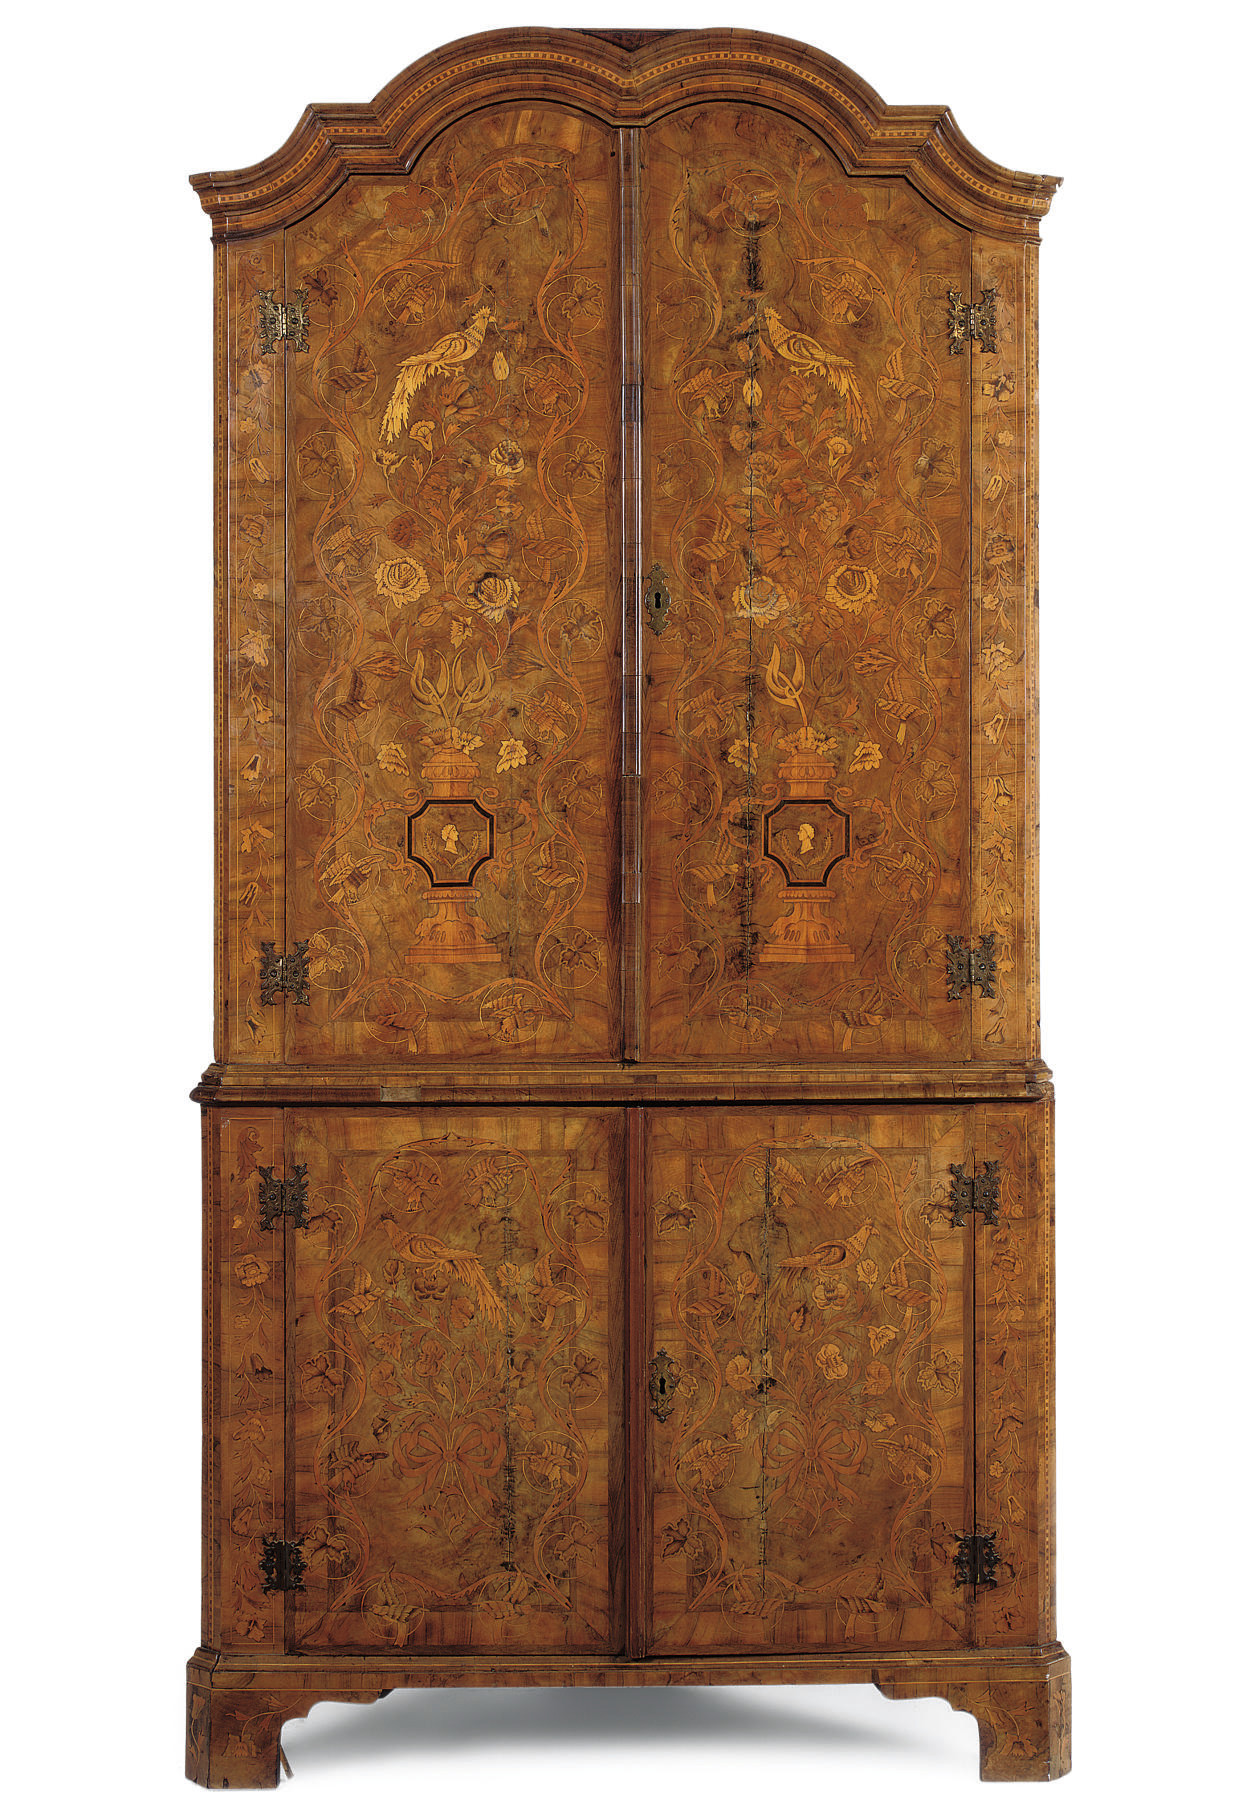 A DUTCH WALNUT AND FLORAL MARQUETRY CORNER CABINET